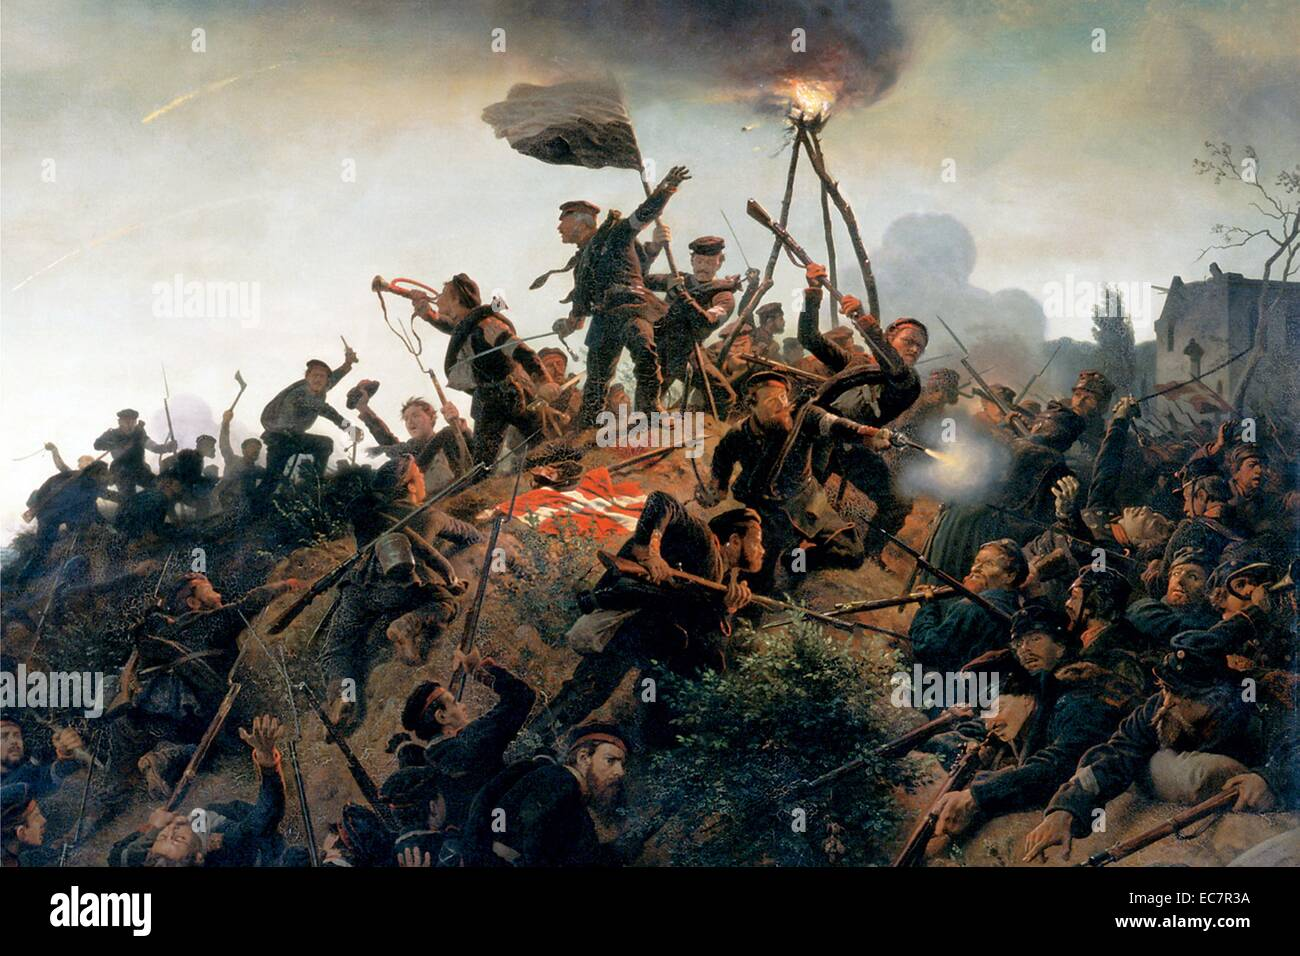 The Battle of Als - Stock Image